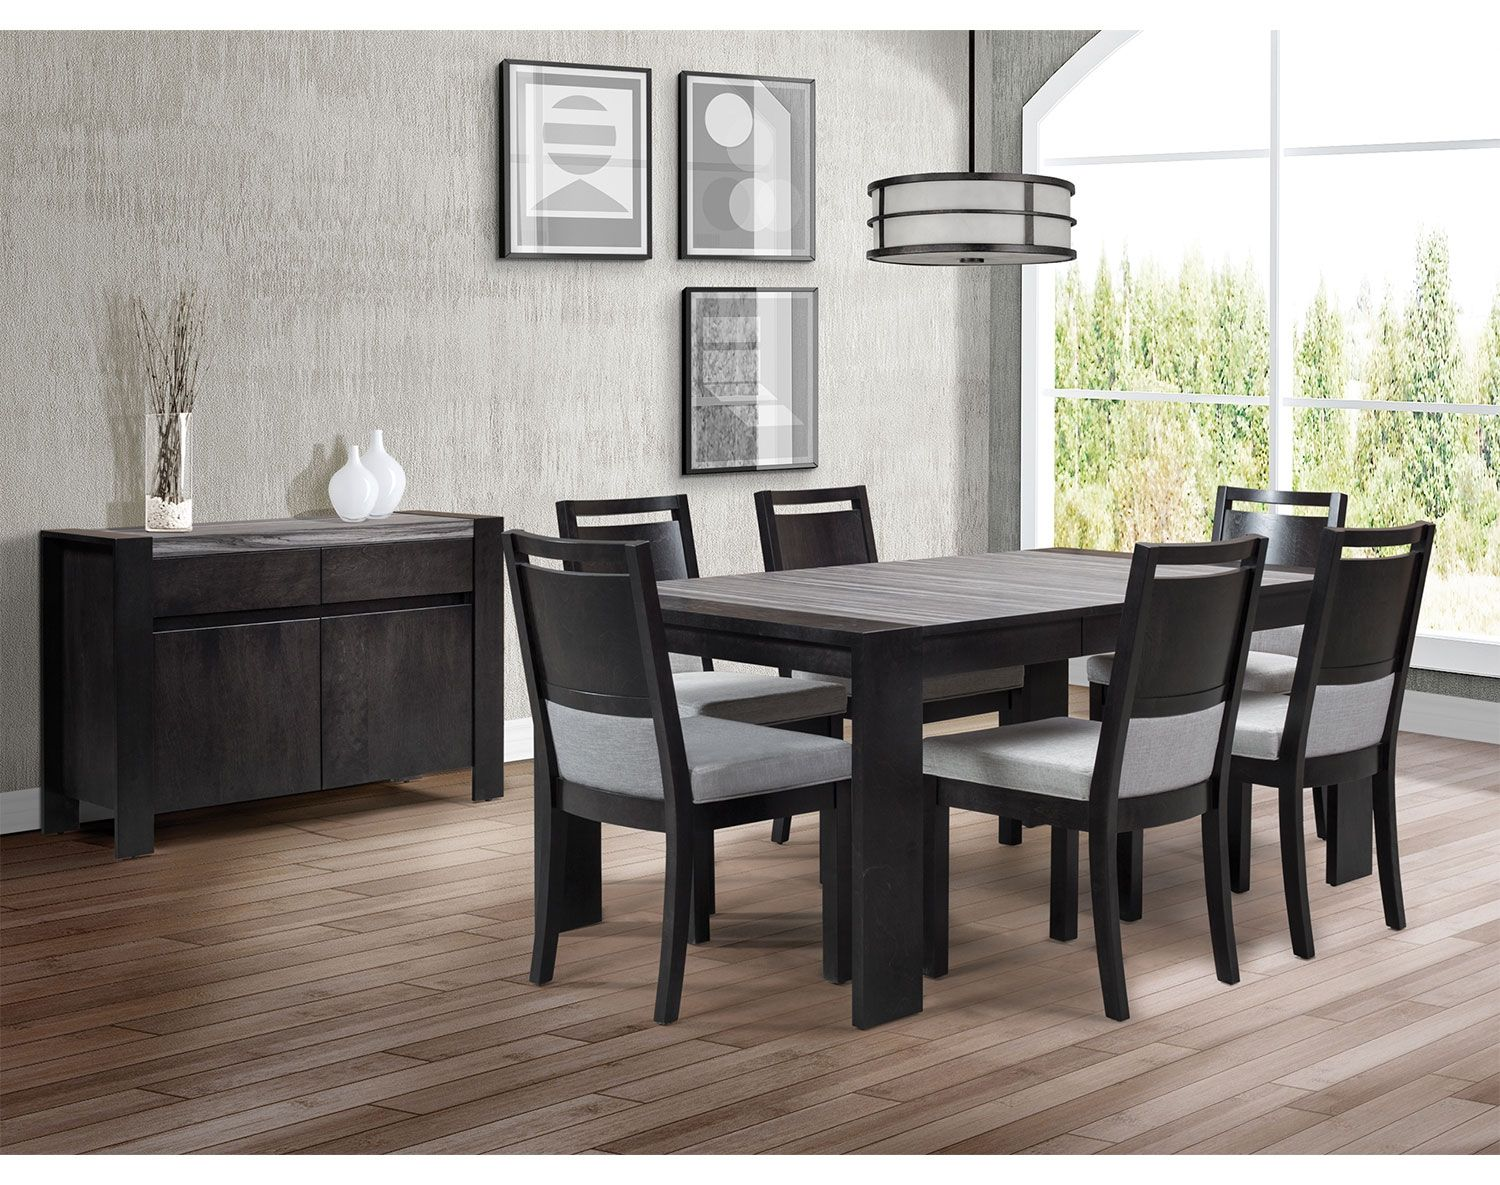 Dining Room Furniture Khala 7 Piece Dining Room Set Espresso